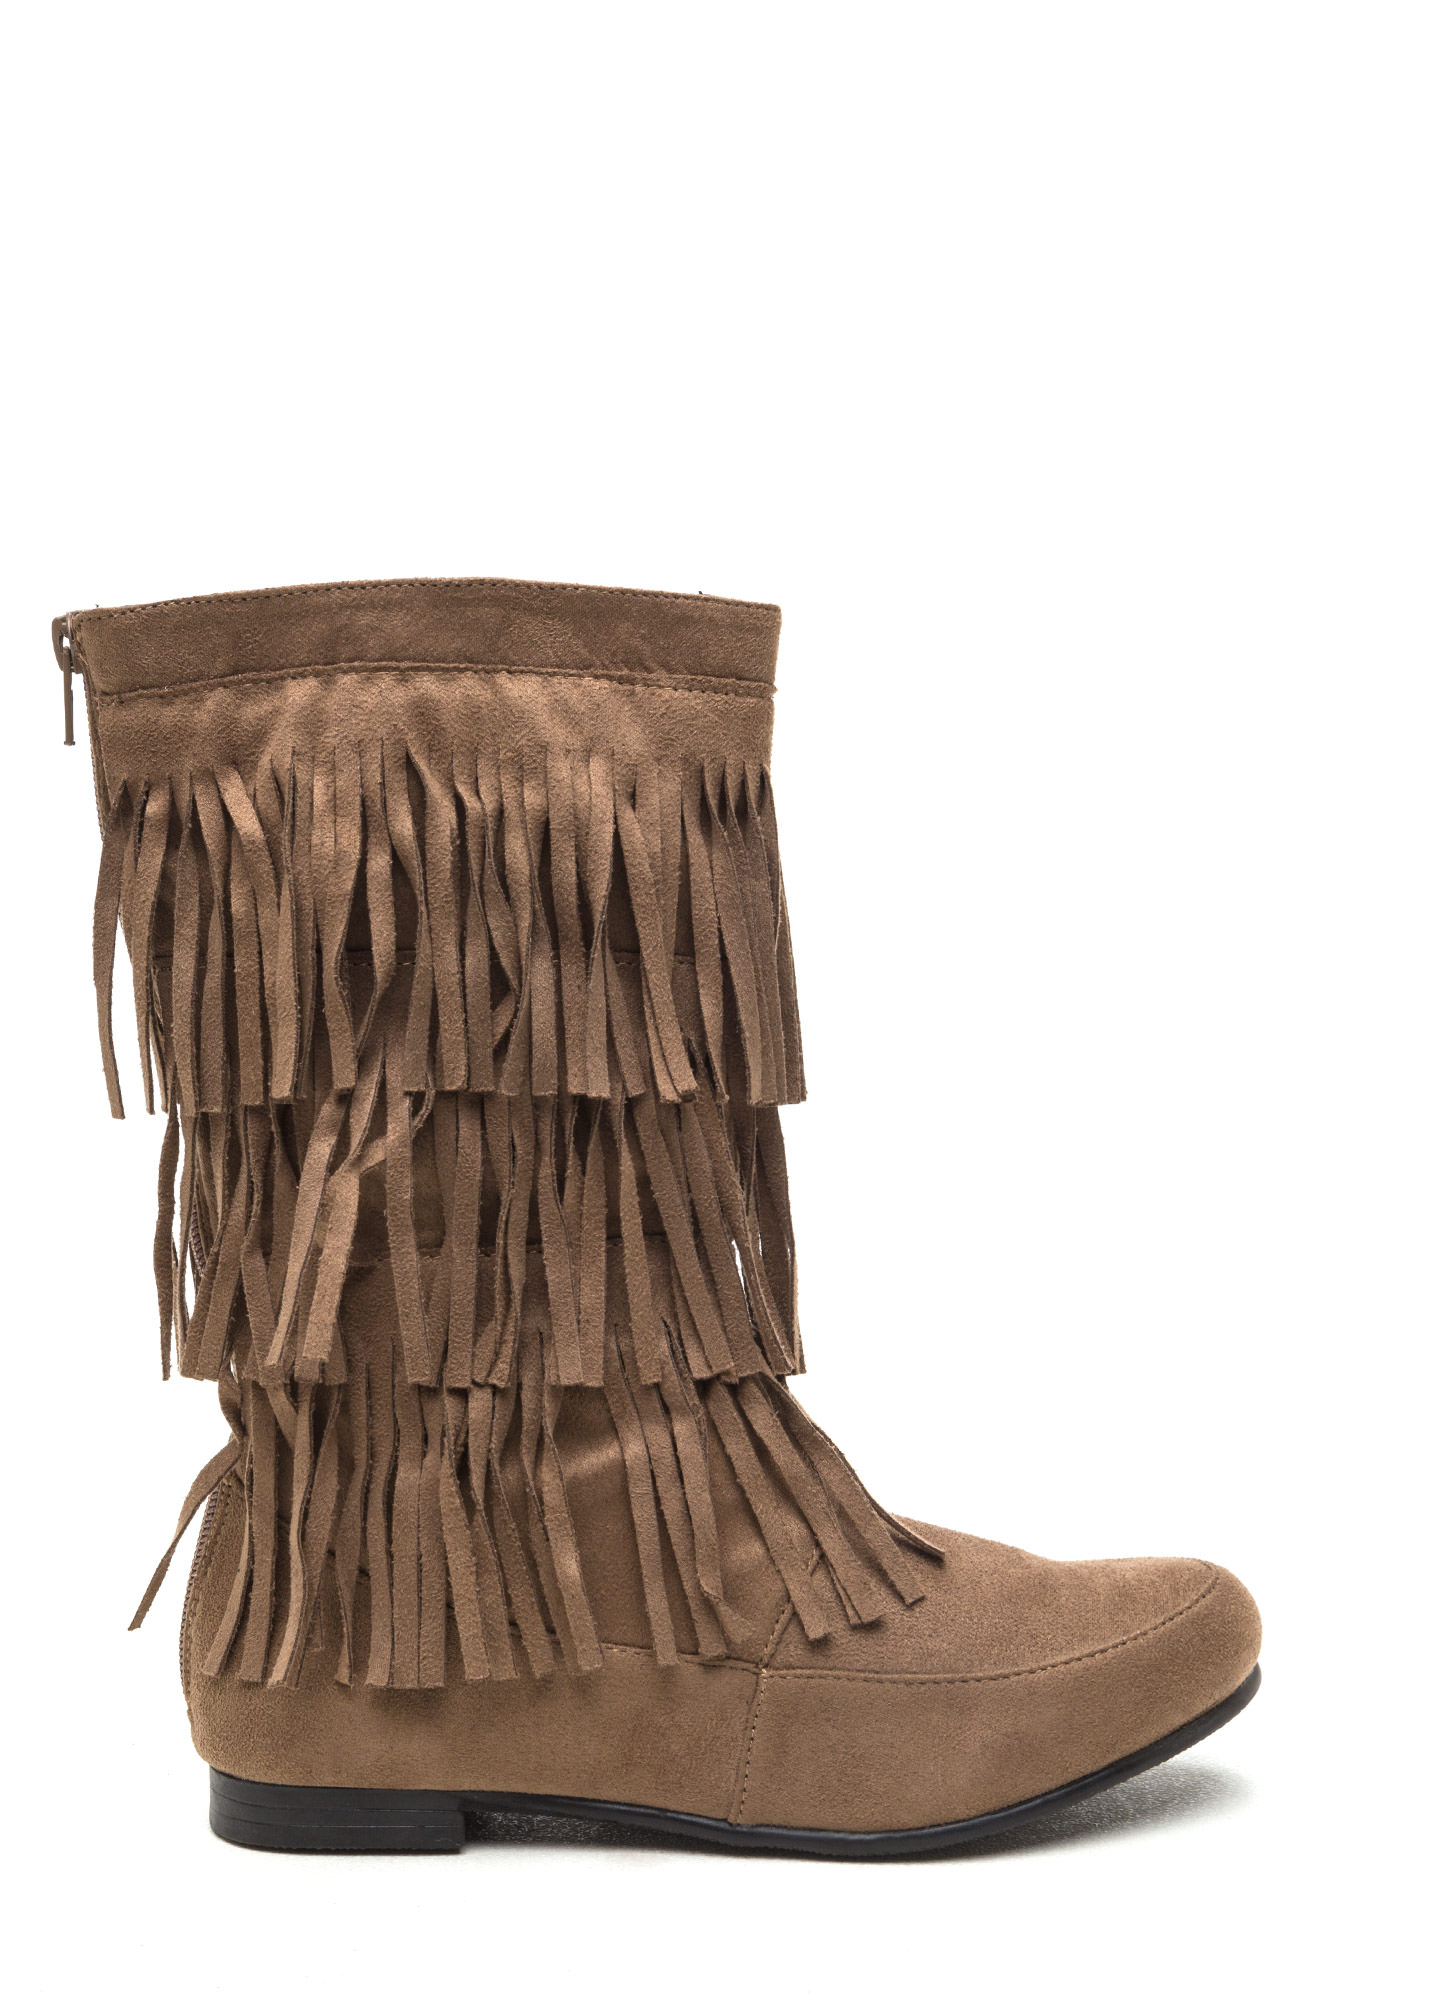 Fringe Swap Faux Suede Boots TAUPE (Final Sale)